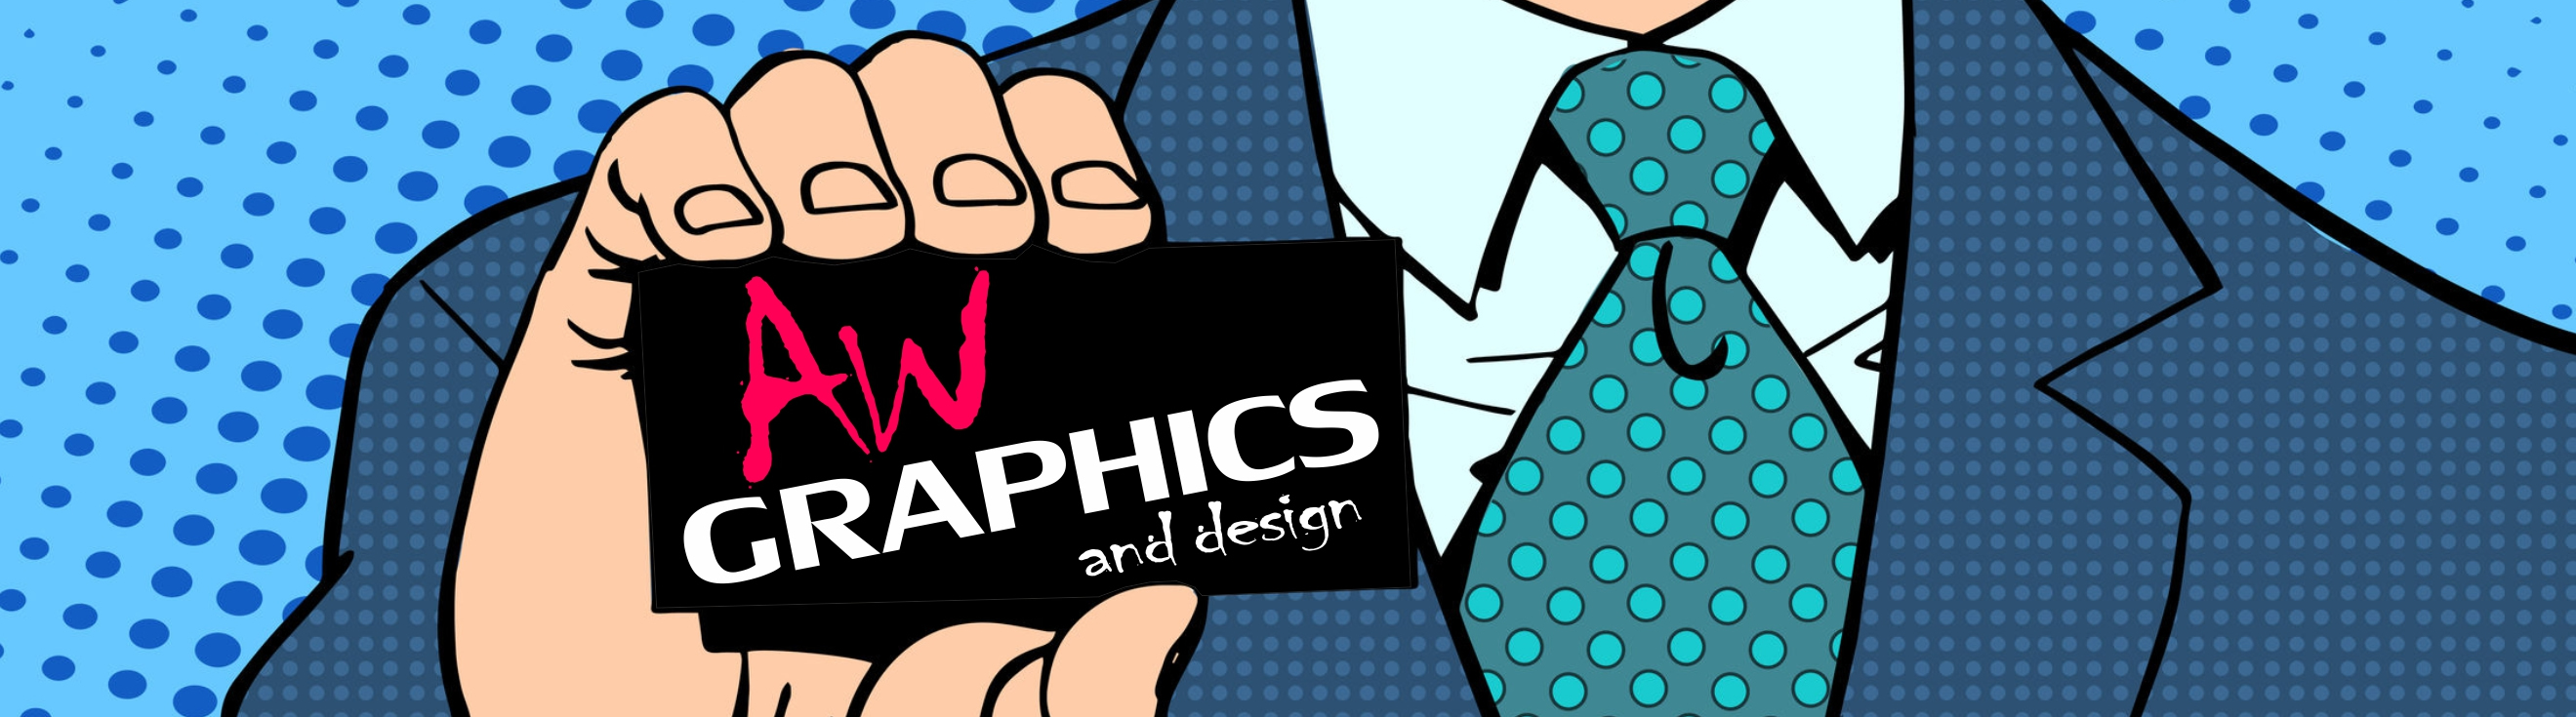 AW Graphics & Design | Website Design & Graphic Design in Gower, Swansea